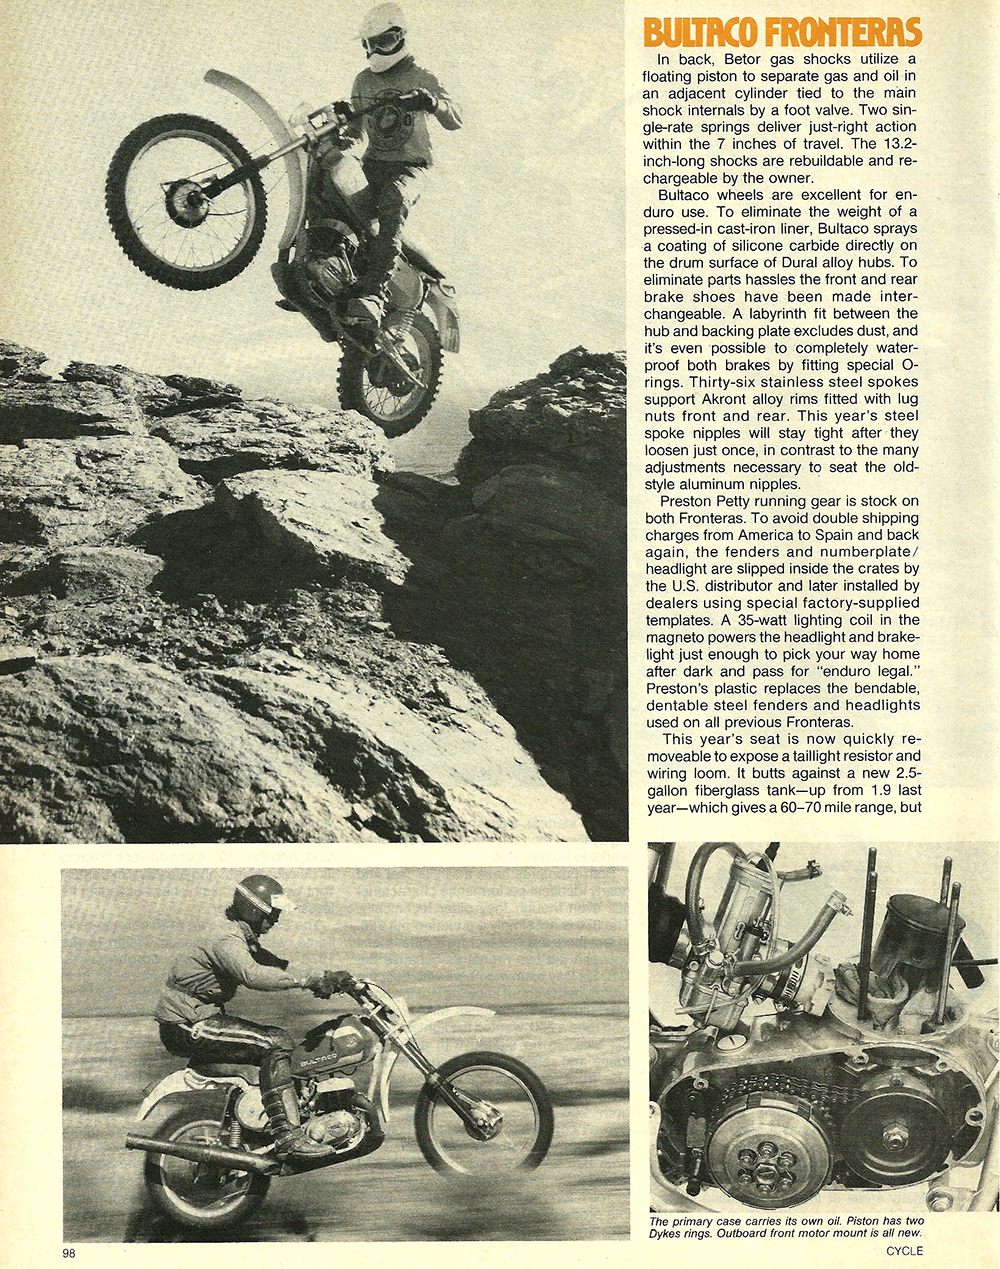 1977 Bultaco 250 and 380 Frontera road test 3.jpg